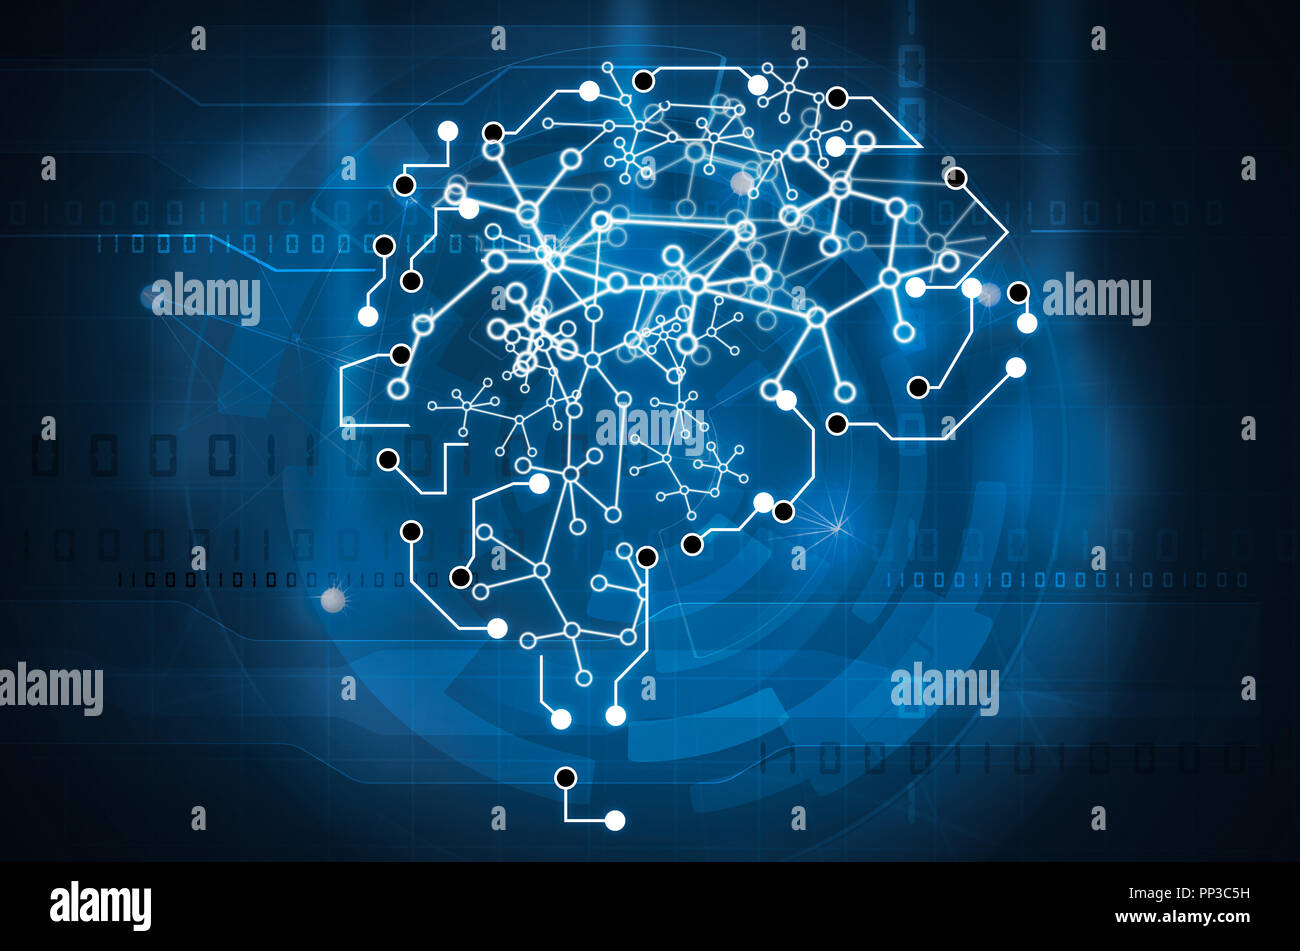 machine learning brain - Stock Image